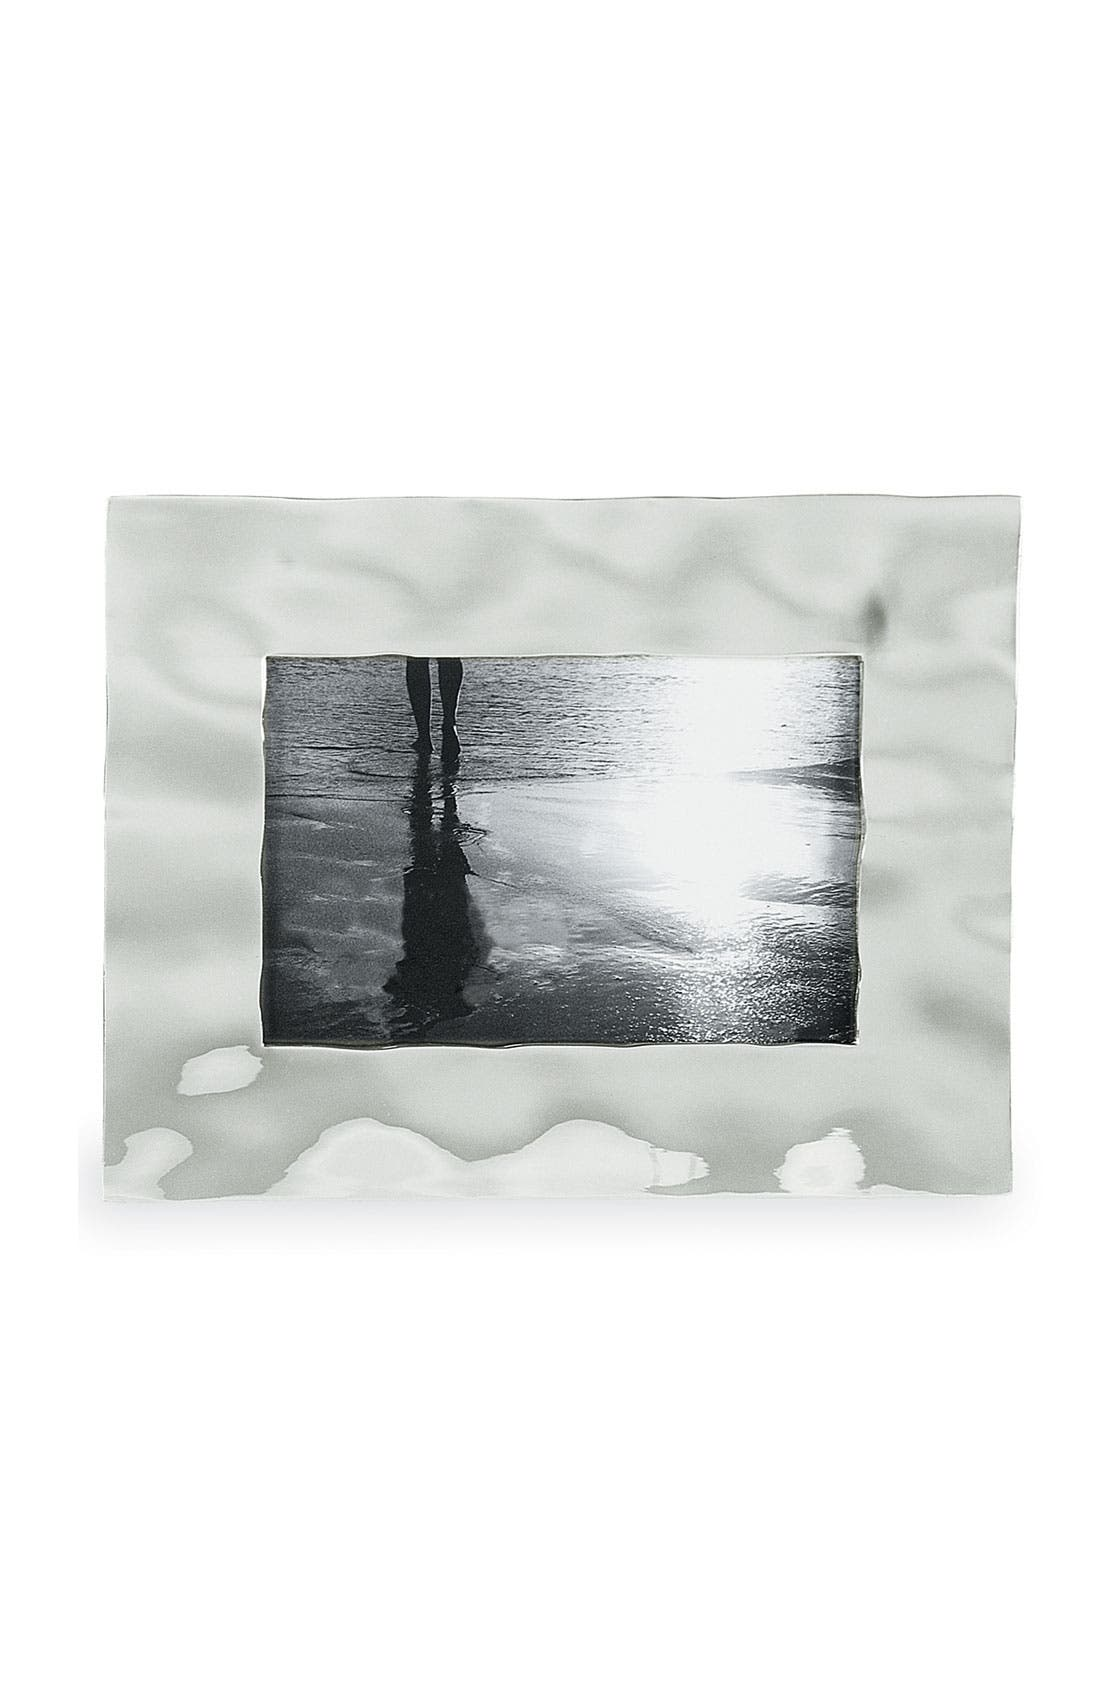 Main Image - Michael Aram 'Reflective Water' Picture Frame (4x6)